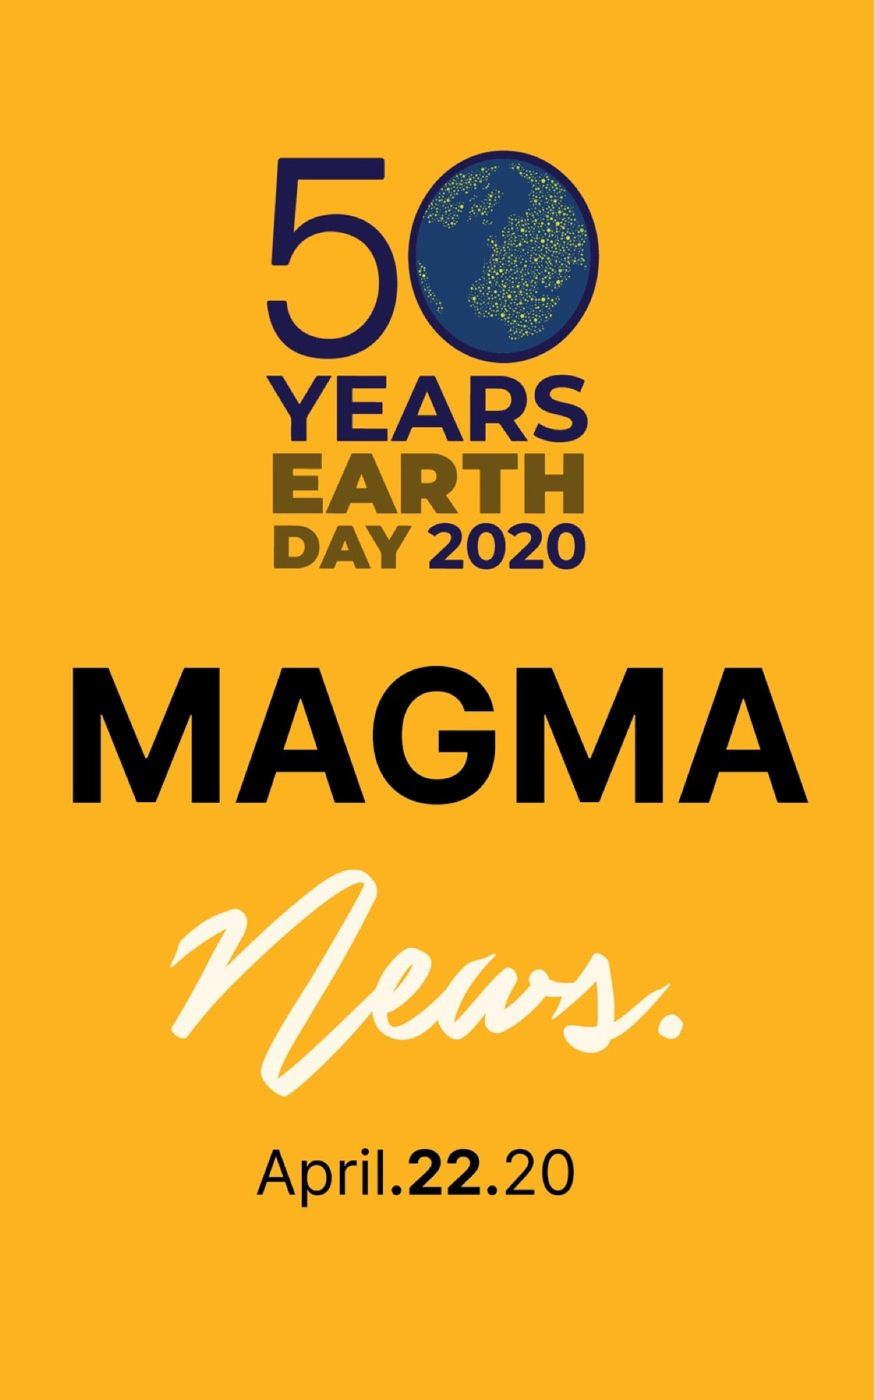 Magma News | April 22, 2020  It's Earth Day and now more than ever we need to make sure we don't loose sight of the task at hand, preserving the planet.  Stay Safe, Stay Curious and most of all Stay Active.